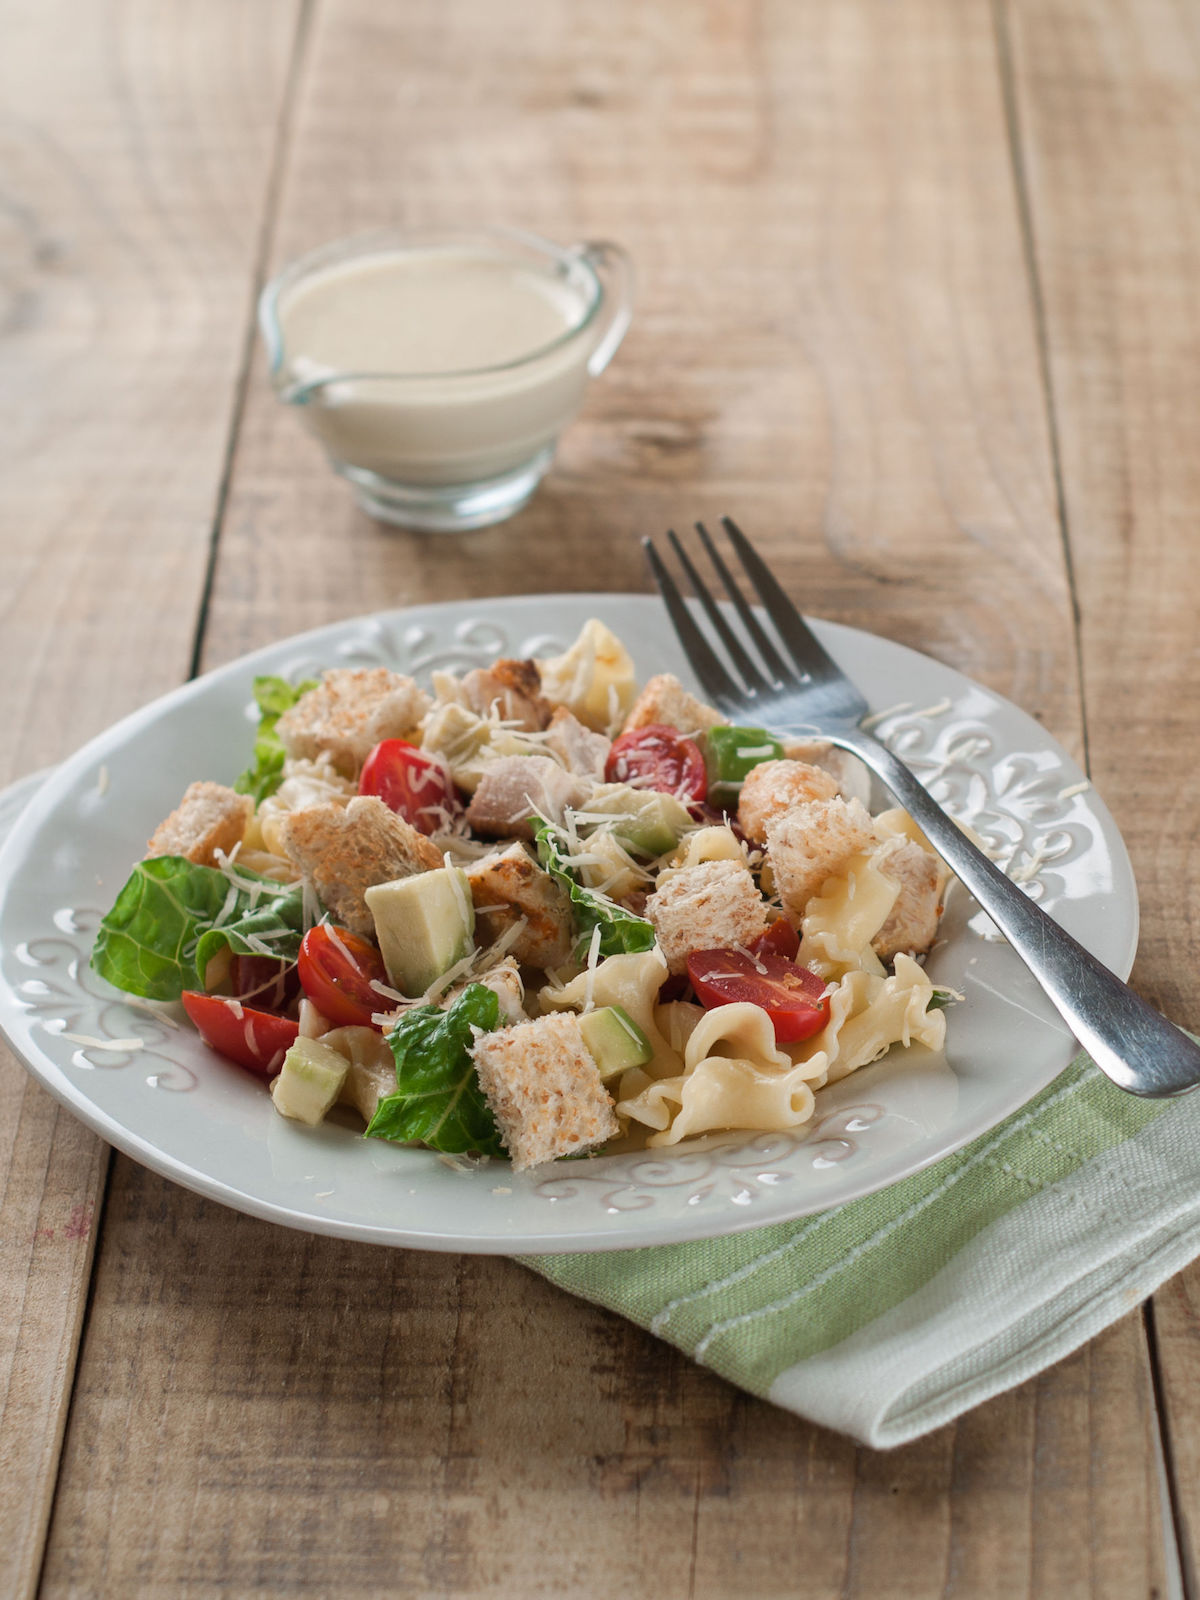 40974610 – pasta salad with chicken, tomato, cheese and sauce, selective focus